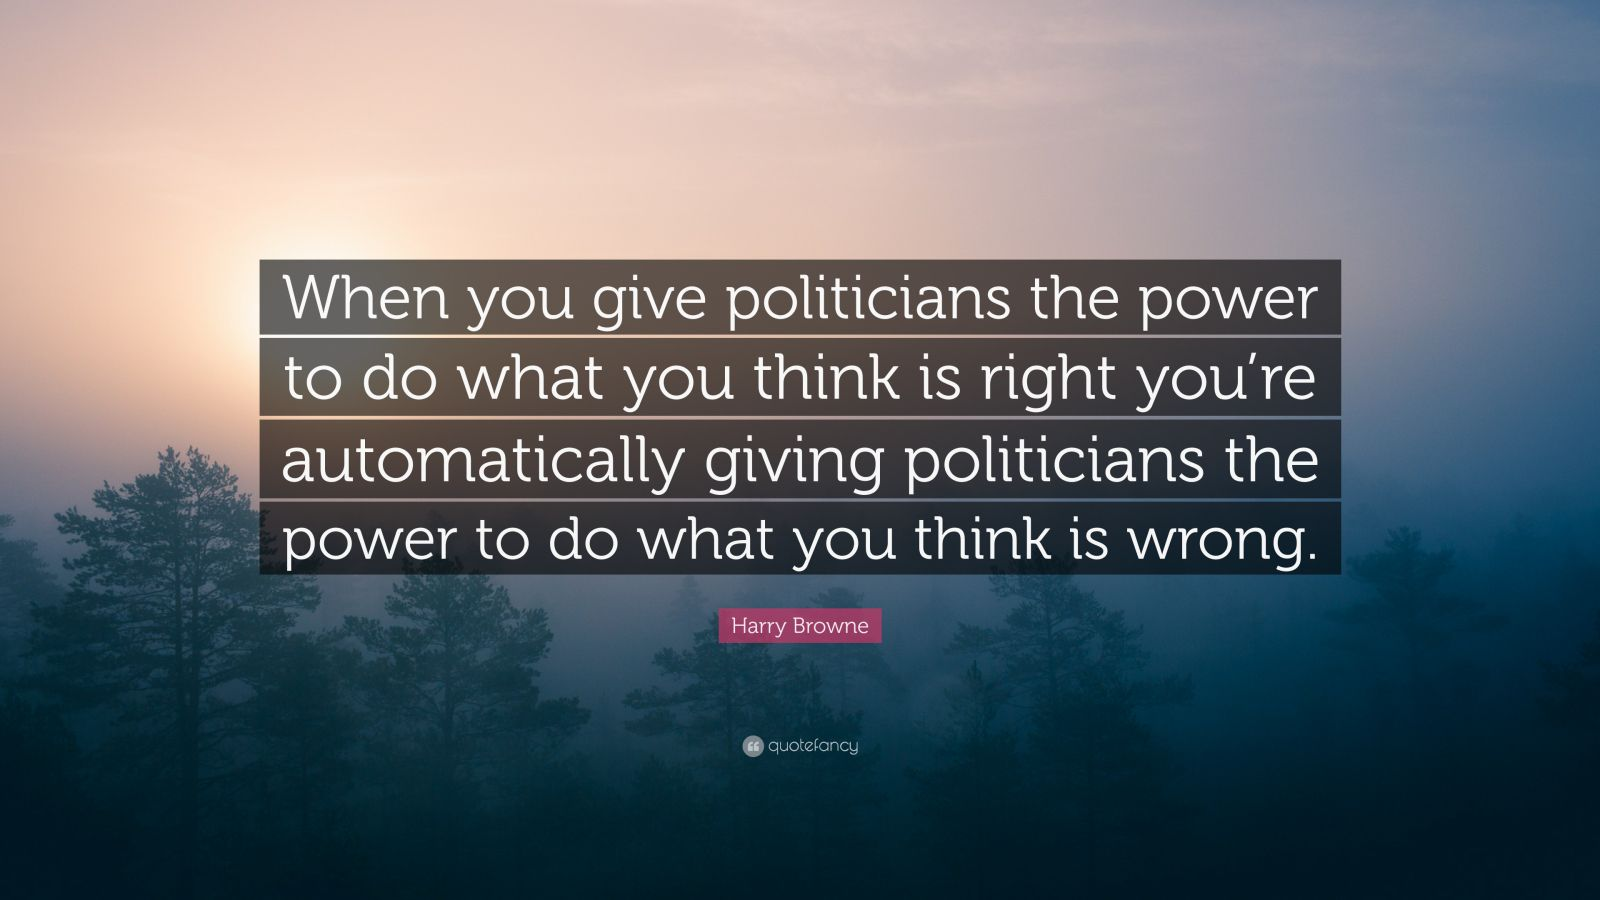 """Harry Browne Quote: """"When you give politicians the power to do what you think is right you're automatically giving politicians the power to do what you think is wrong."""""""